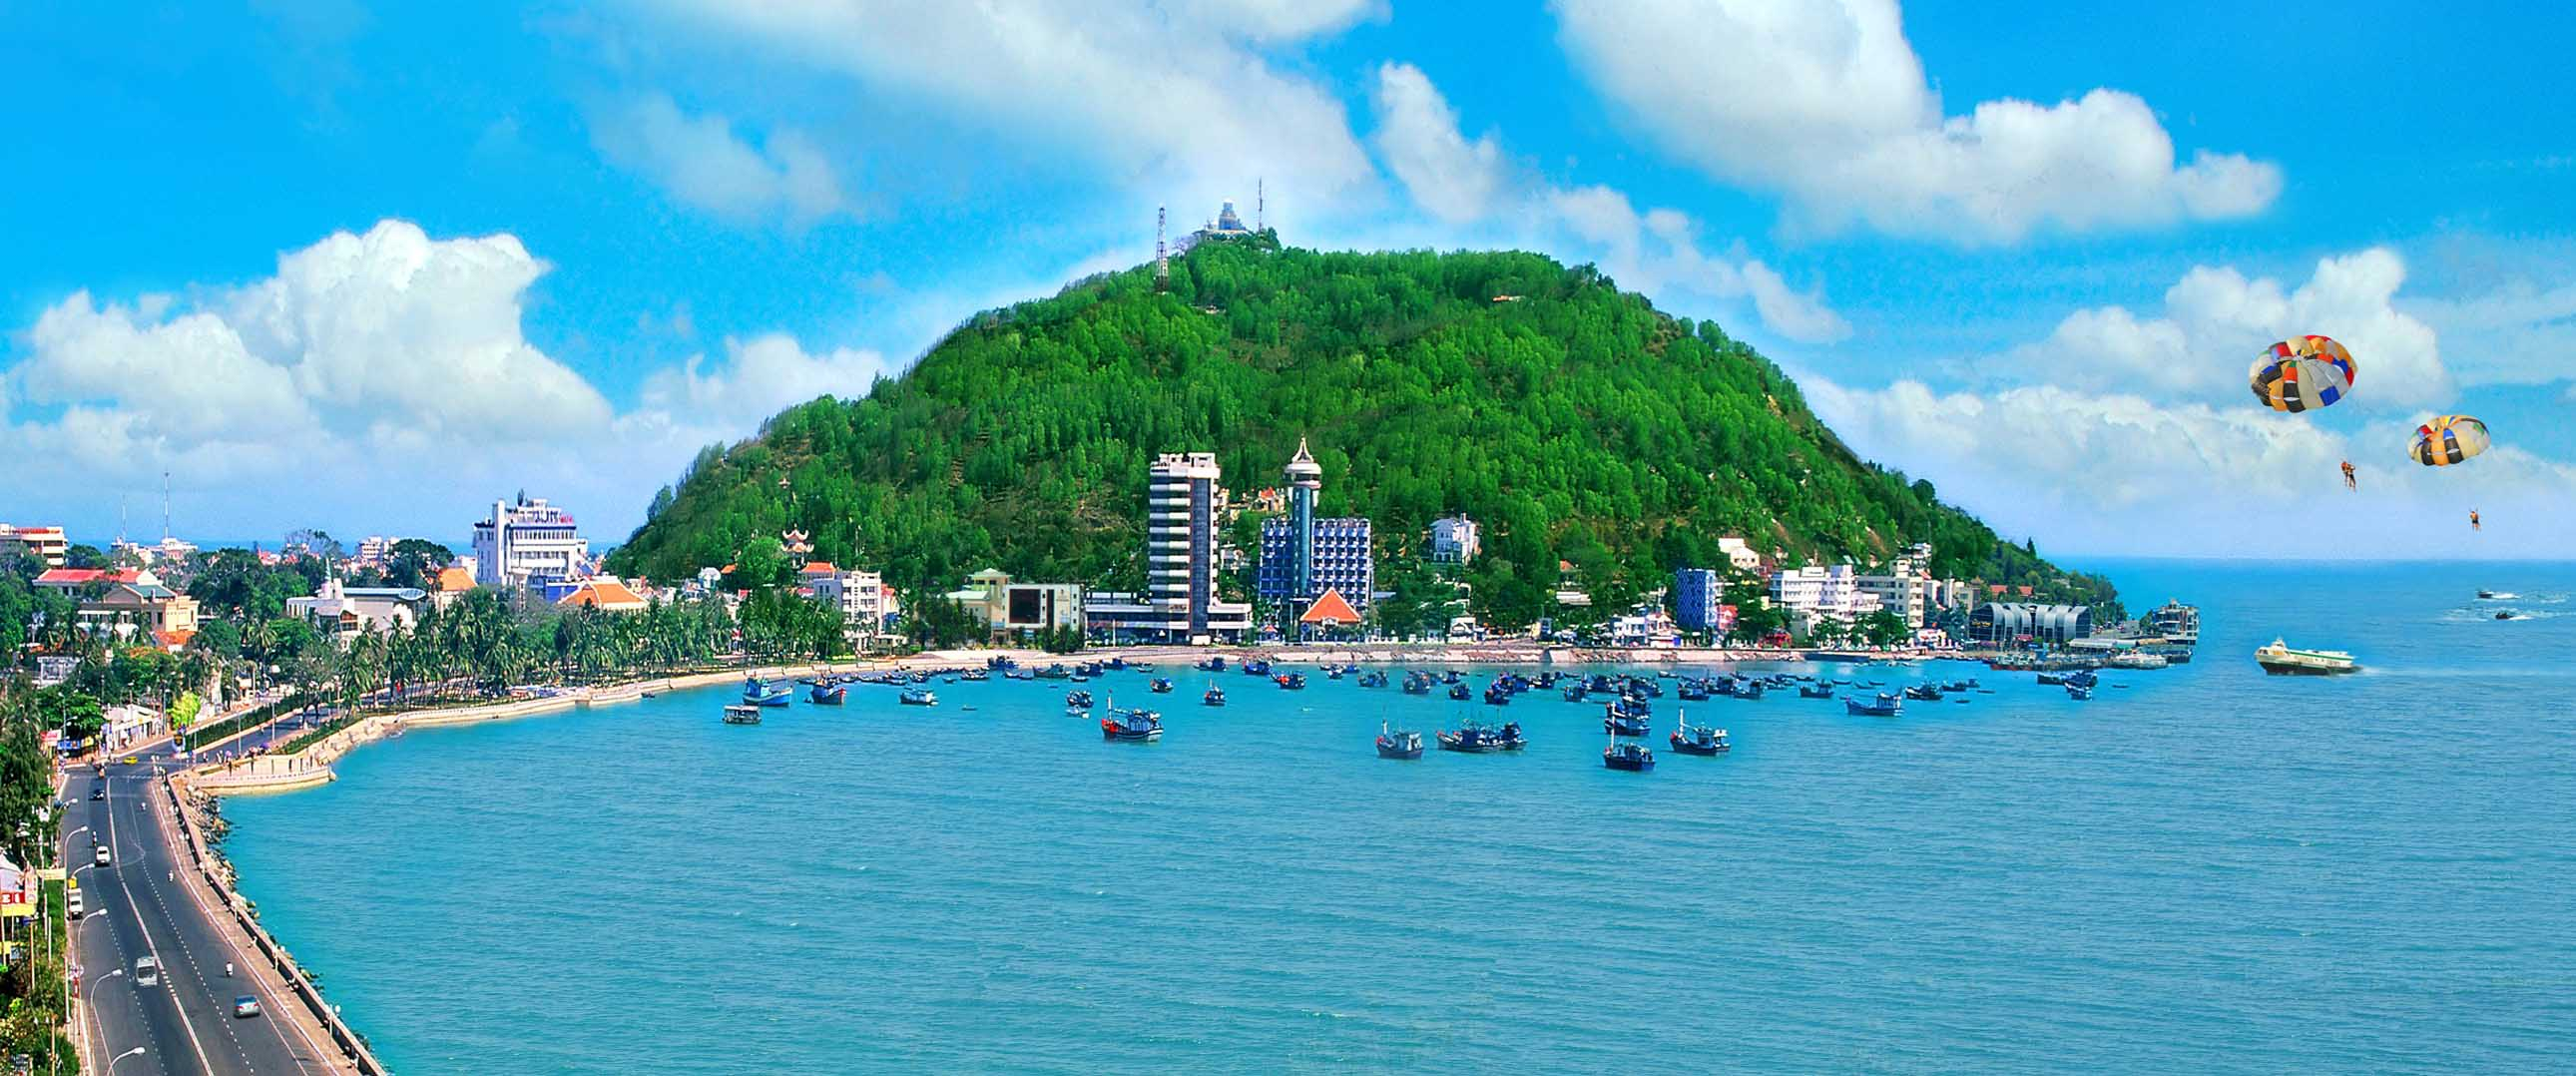 Hotels in Vung Tau